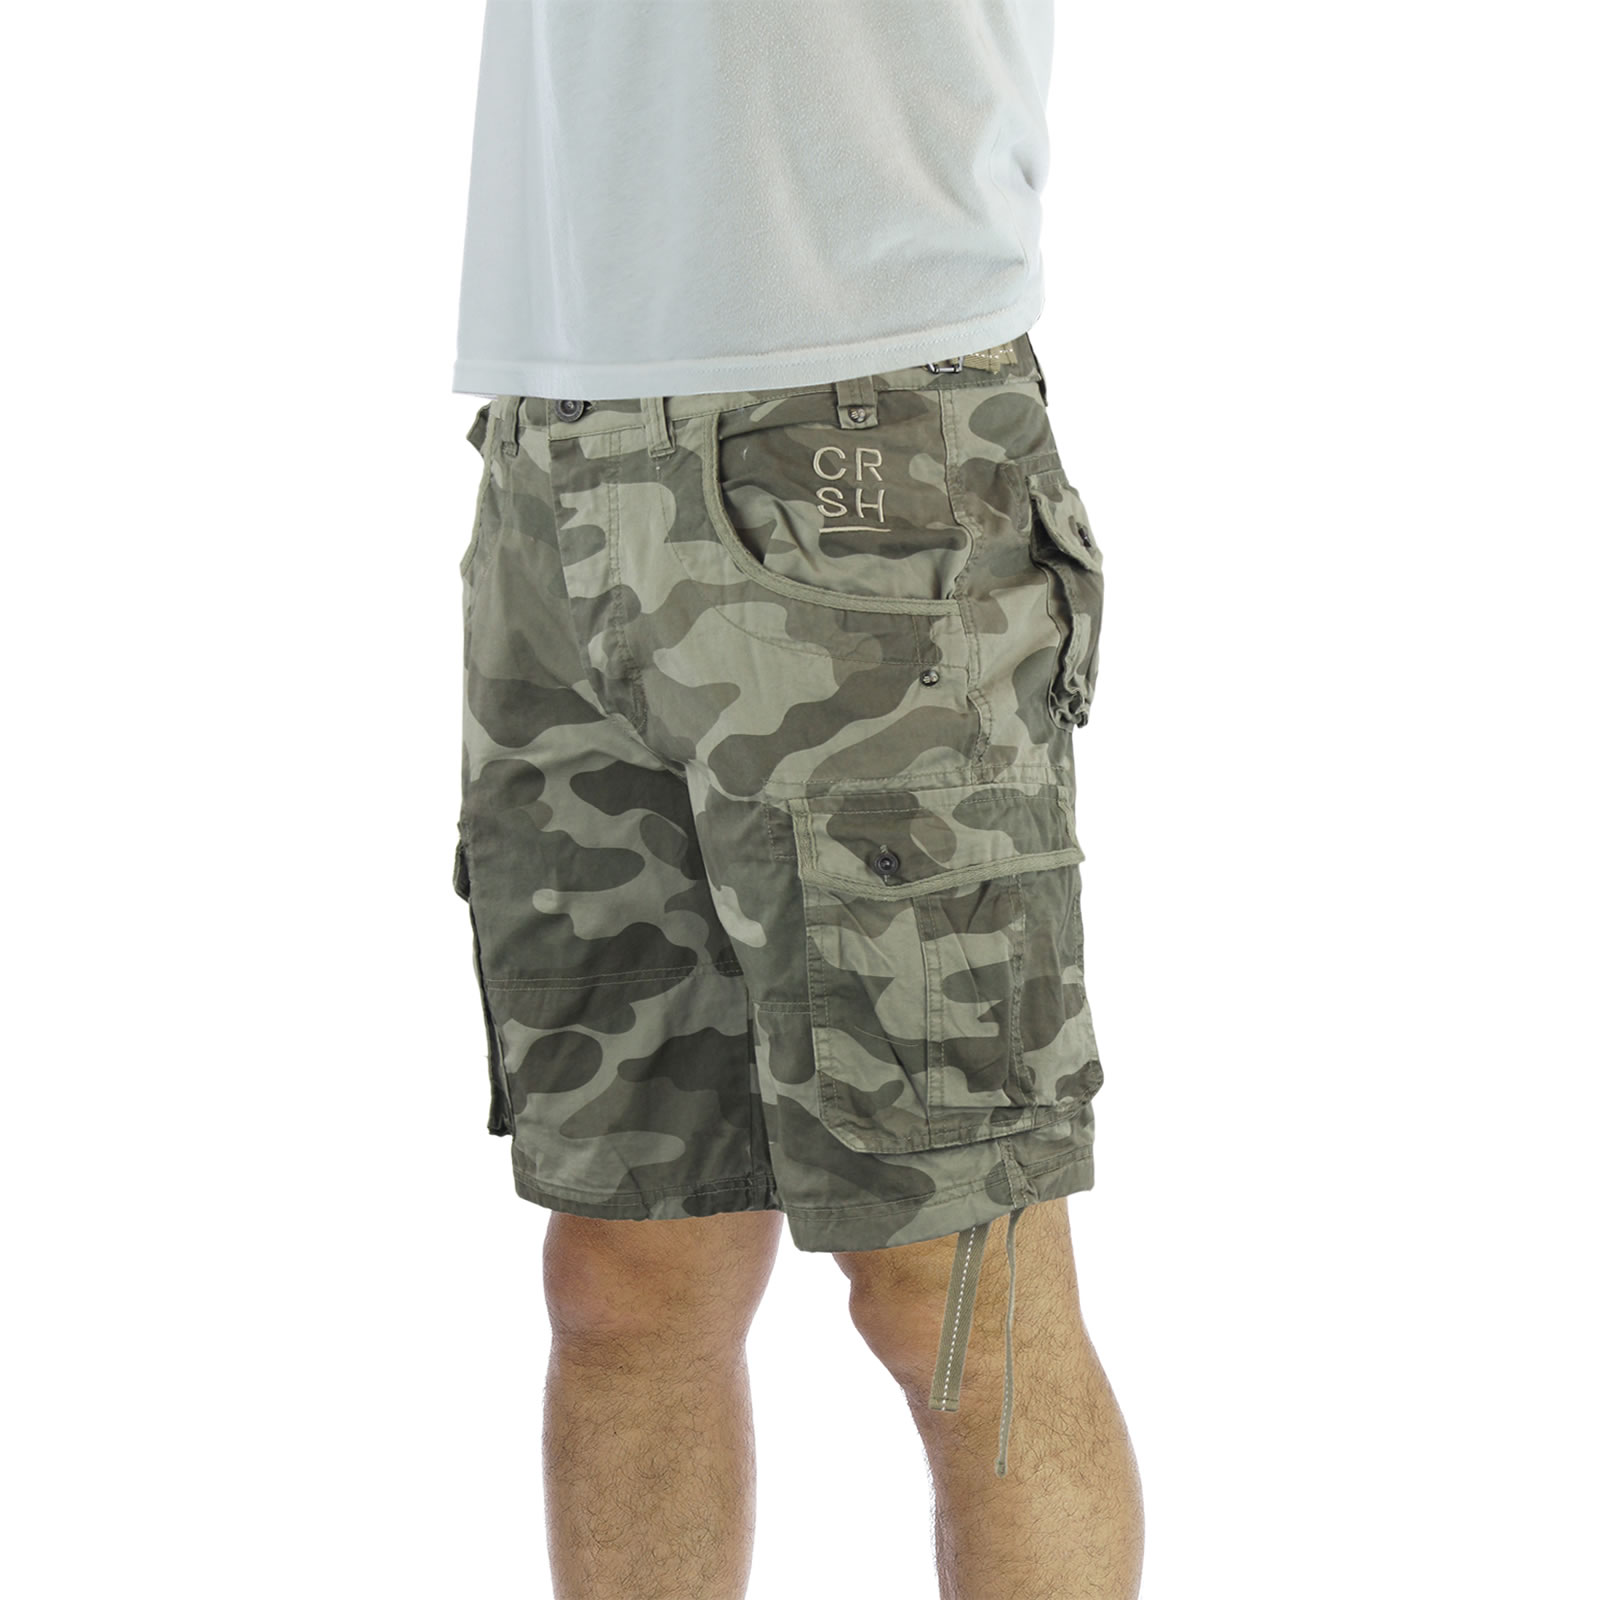 Looking for wholesale bulk discount army print shorts cheap online drop shipping? smashingprogrammsrj.tk offers a large selection of discount cheap army print shorts at a fraction of the retail price.